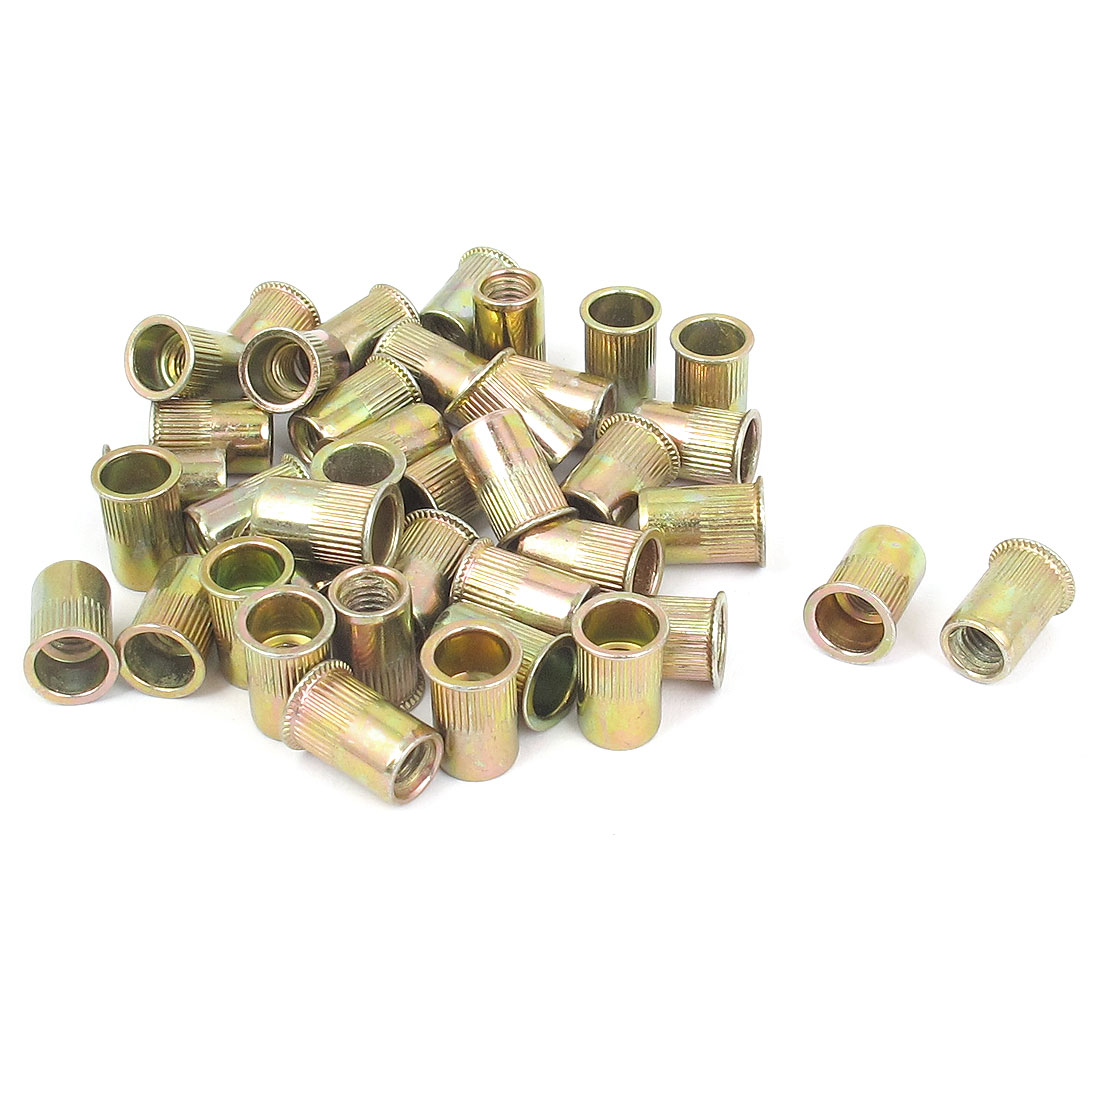 40 Pcs 6mm Thread Dia Zinc Plated Rivet Nut Insert Nutsert Brass Tone